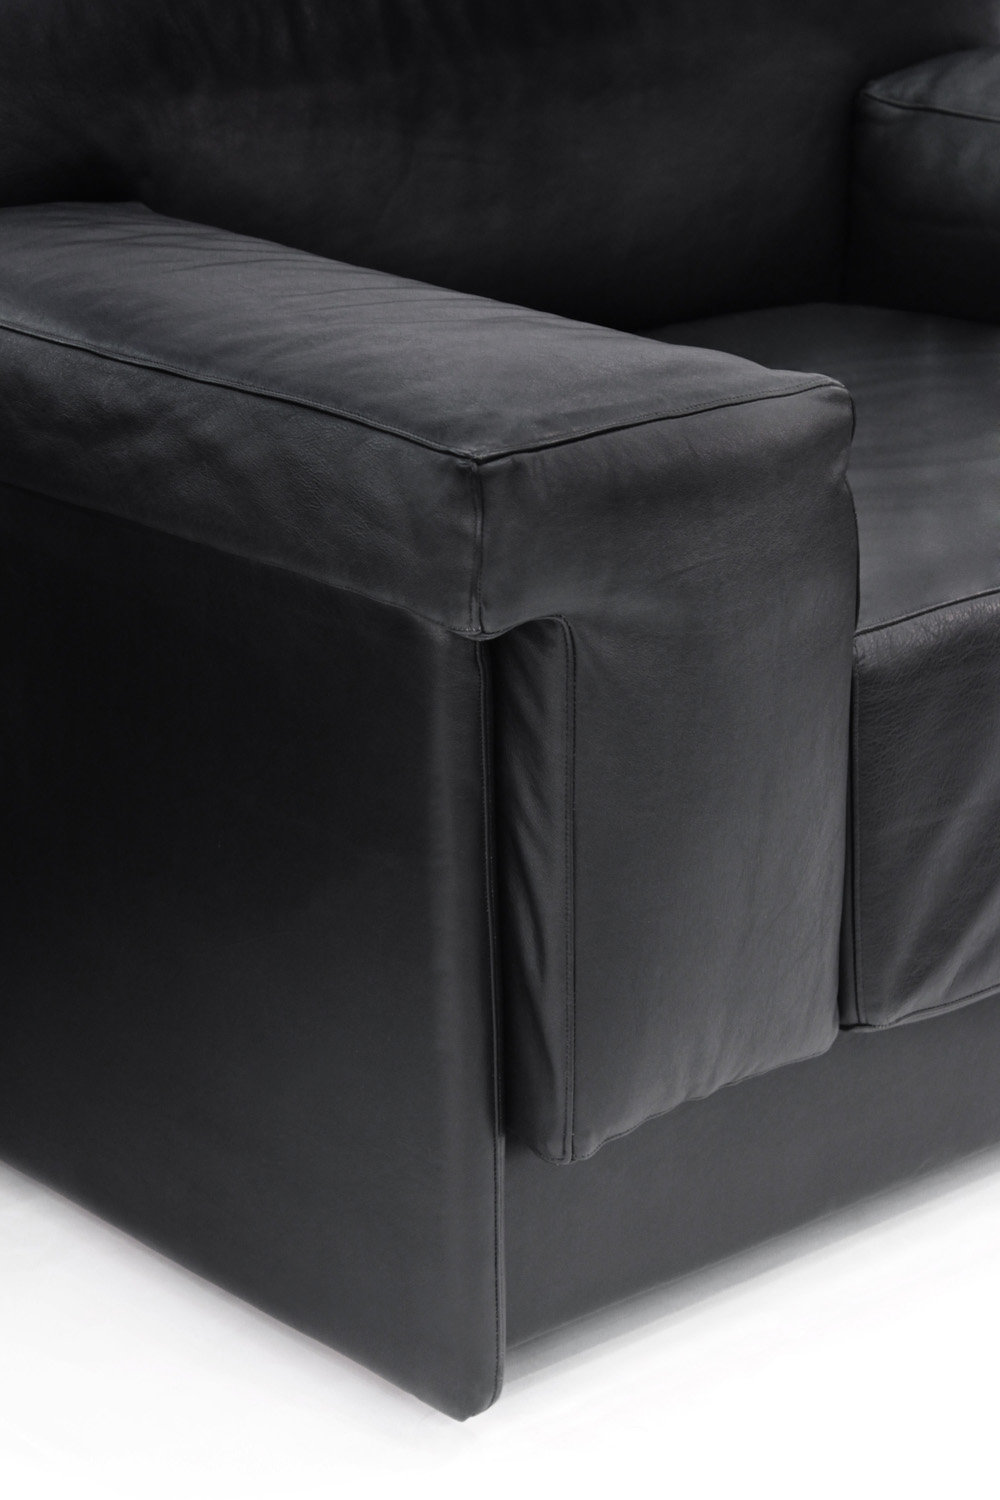 Probber 95 chunky black leather clubchairs46 detail hires.jpg